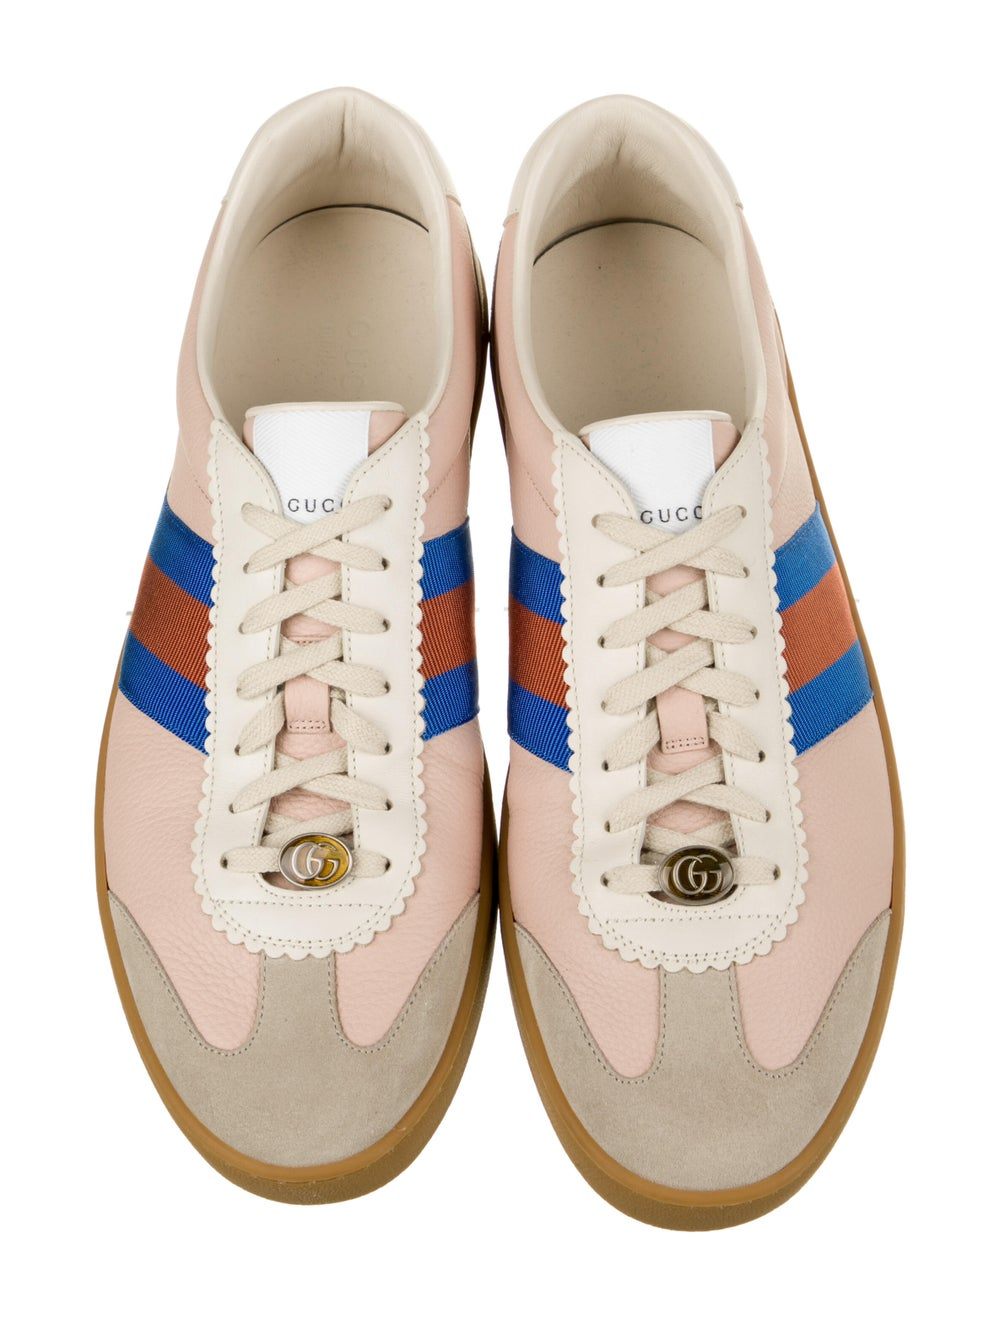 Gucci G74 Sneakers - image 3